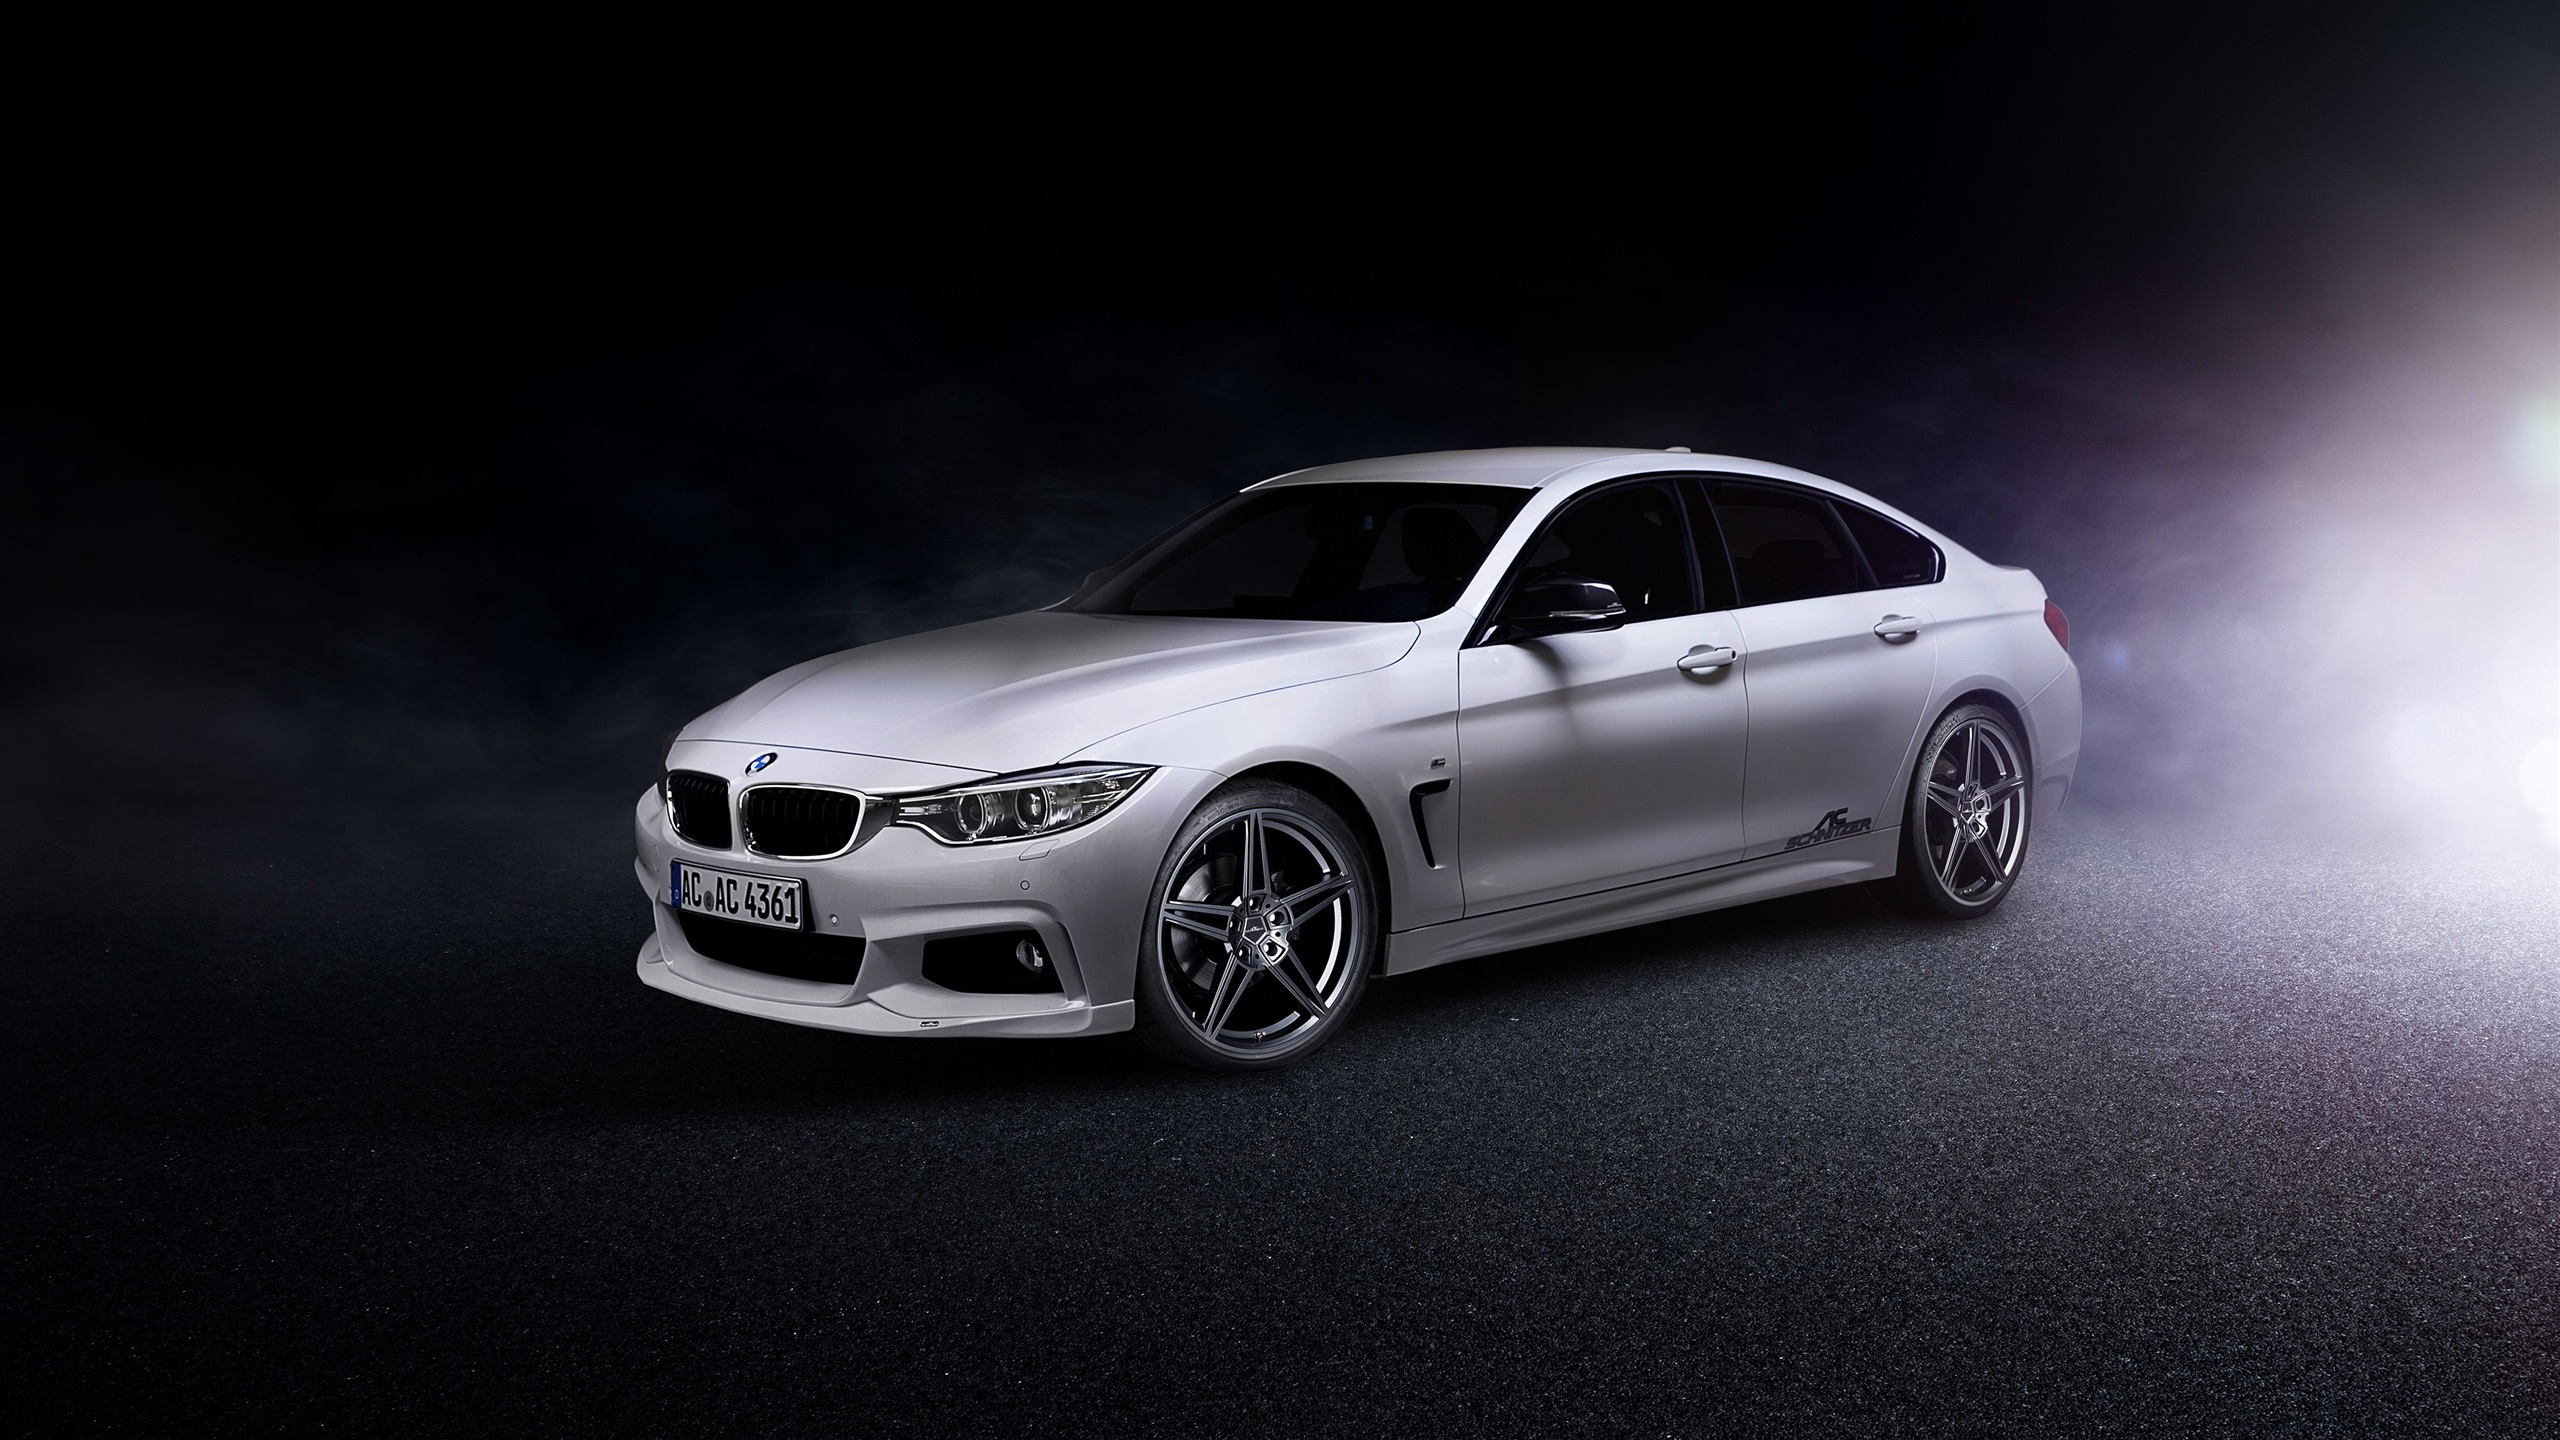 Wallpaper 2014 Bmw 4 Series Gran Coupe F36 White Car 2560x1600 Hd Picture Image